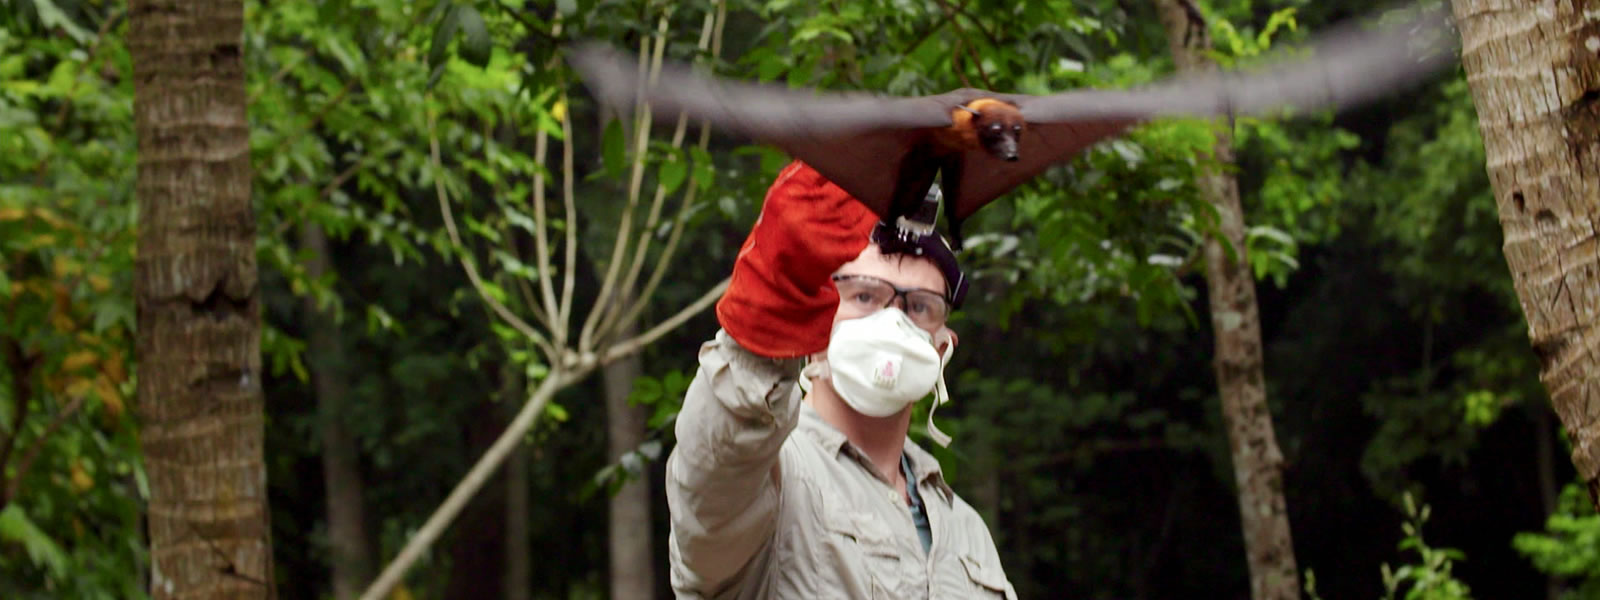 man releasing a bat in the jungle